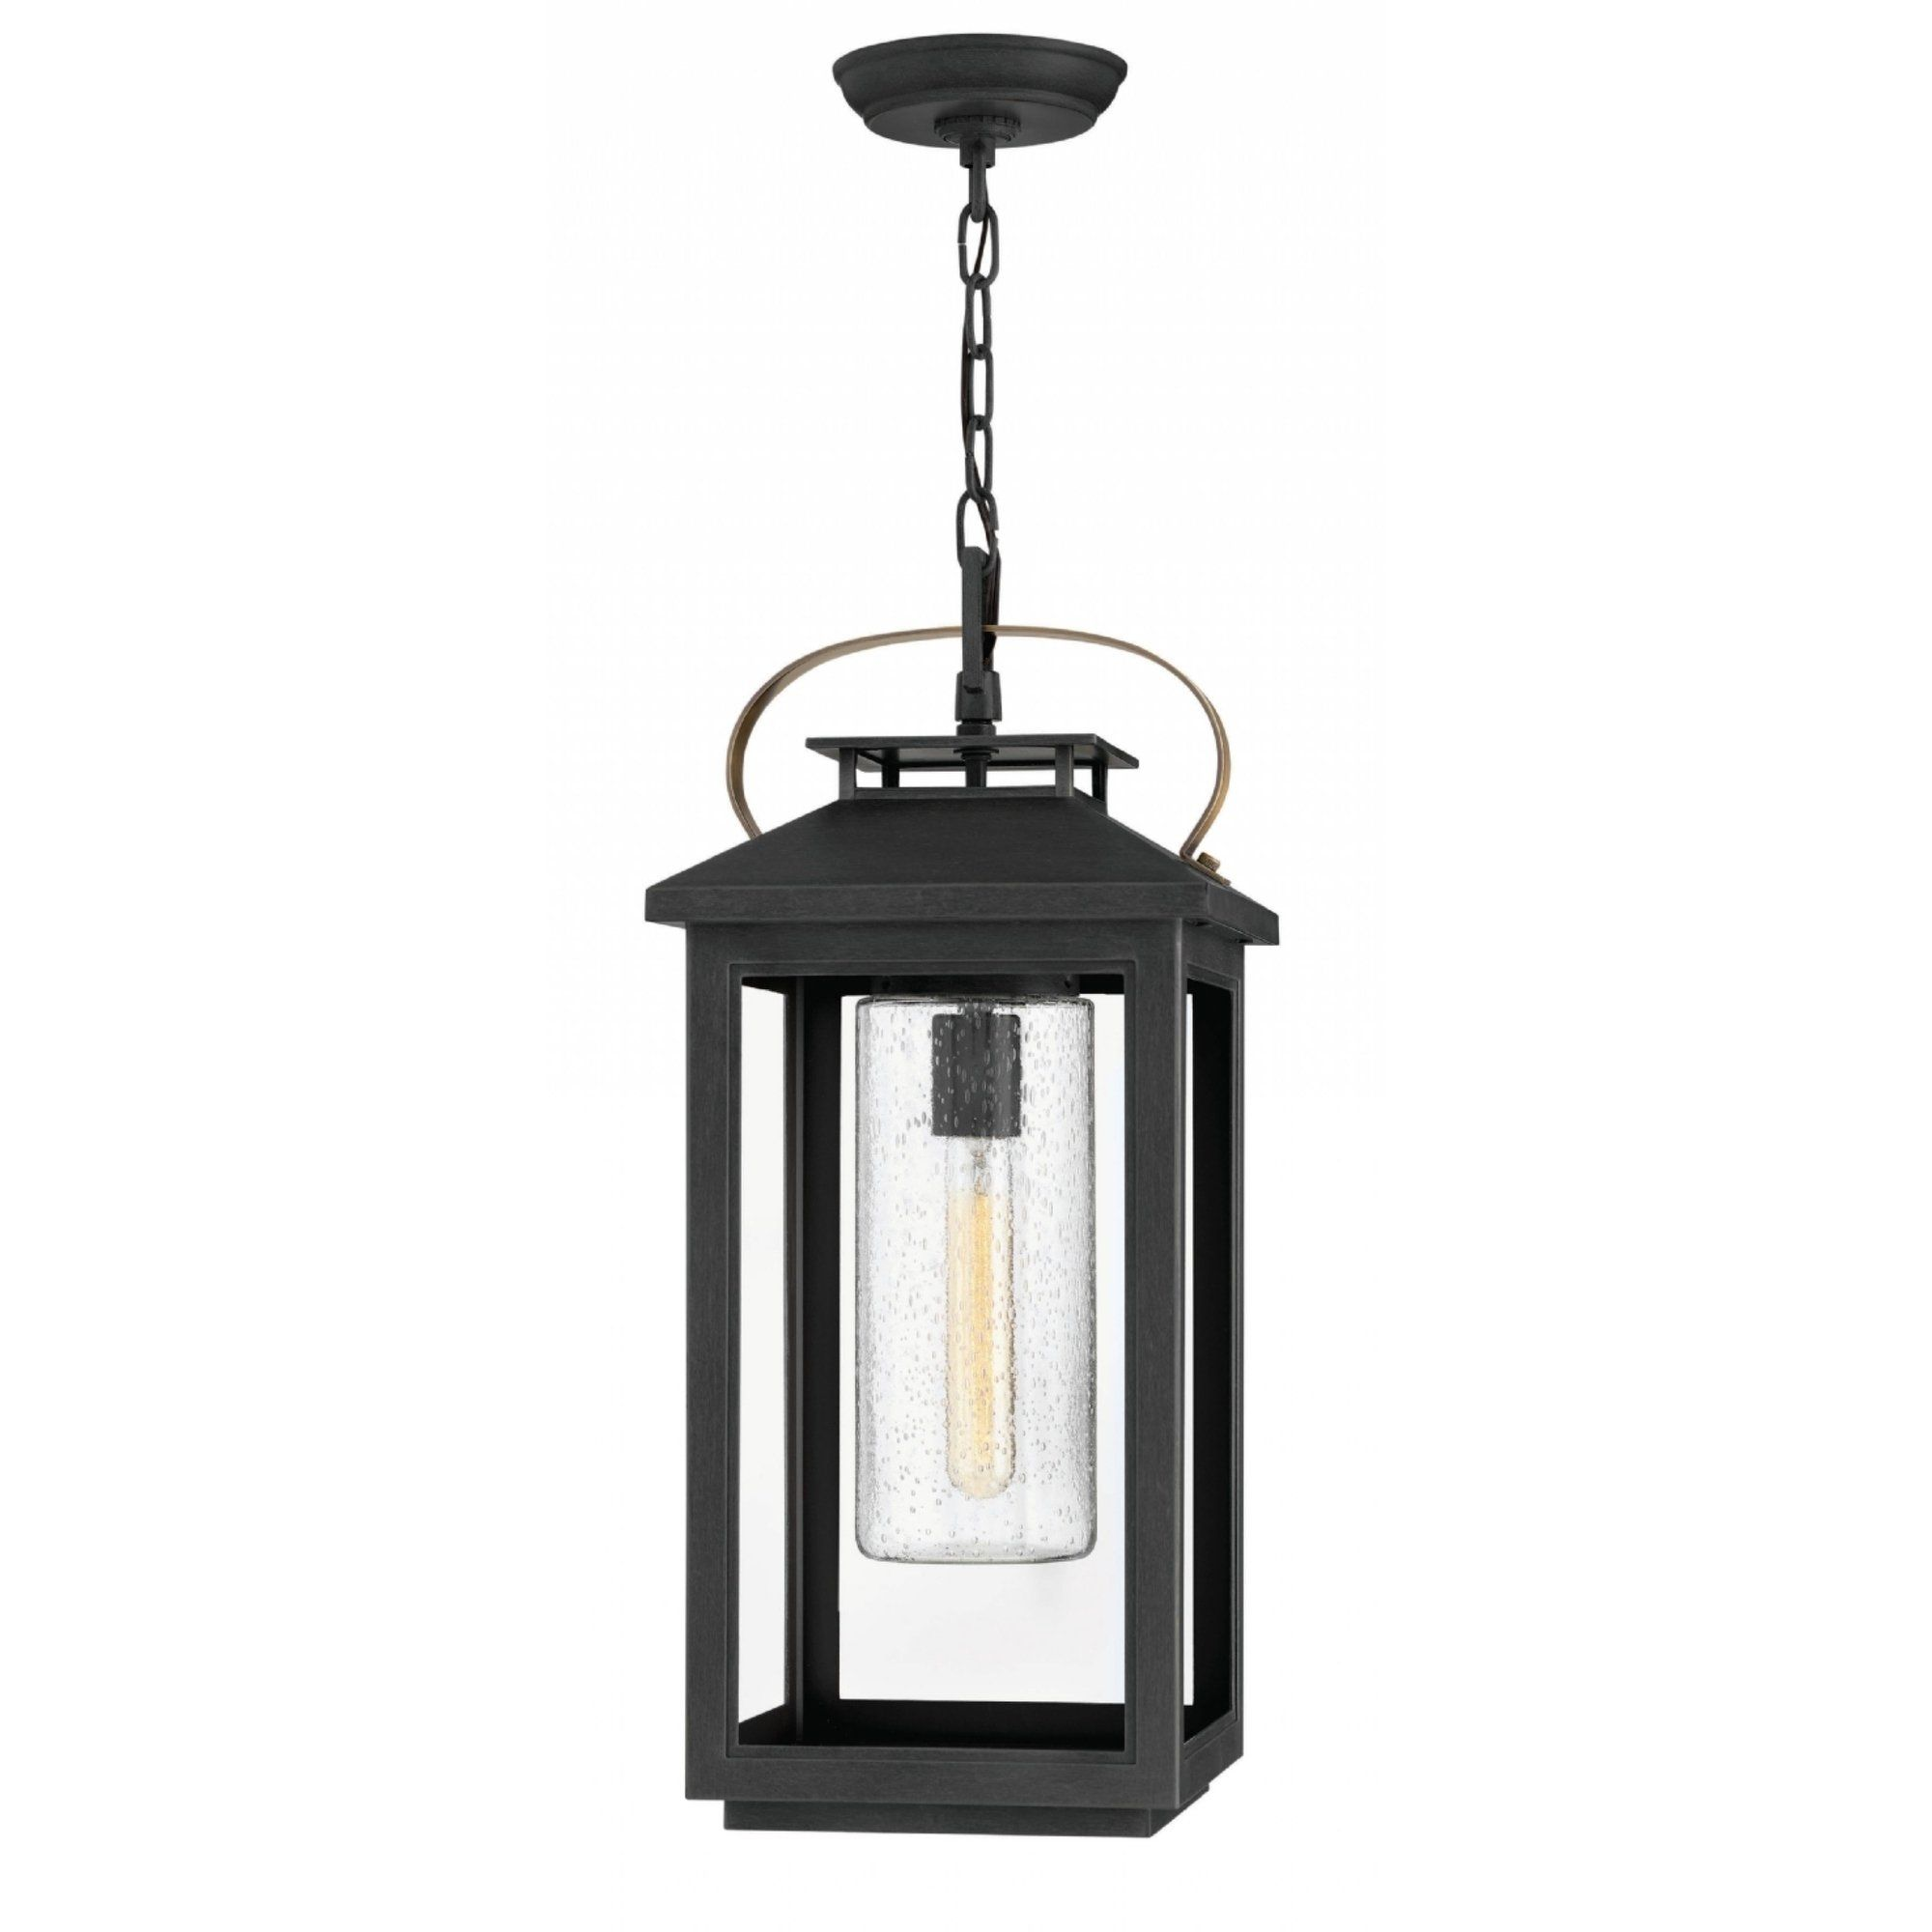 Hinkley Atwater 1 Light Outdoor Pendant In Black Hinkley Lighting Outdoor Hanging Lights Outdoor Hanging Lanterns Hanging Lights